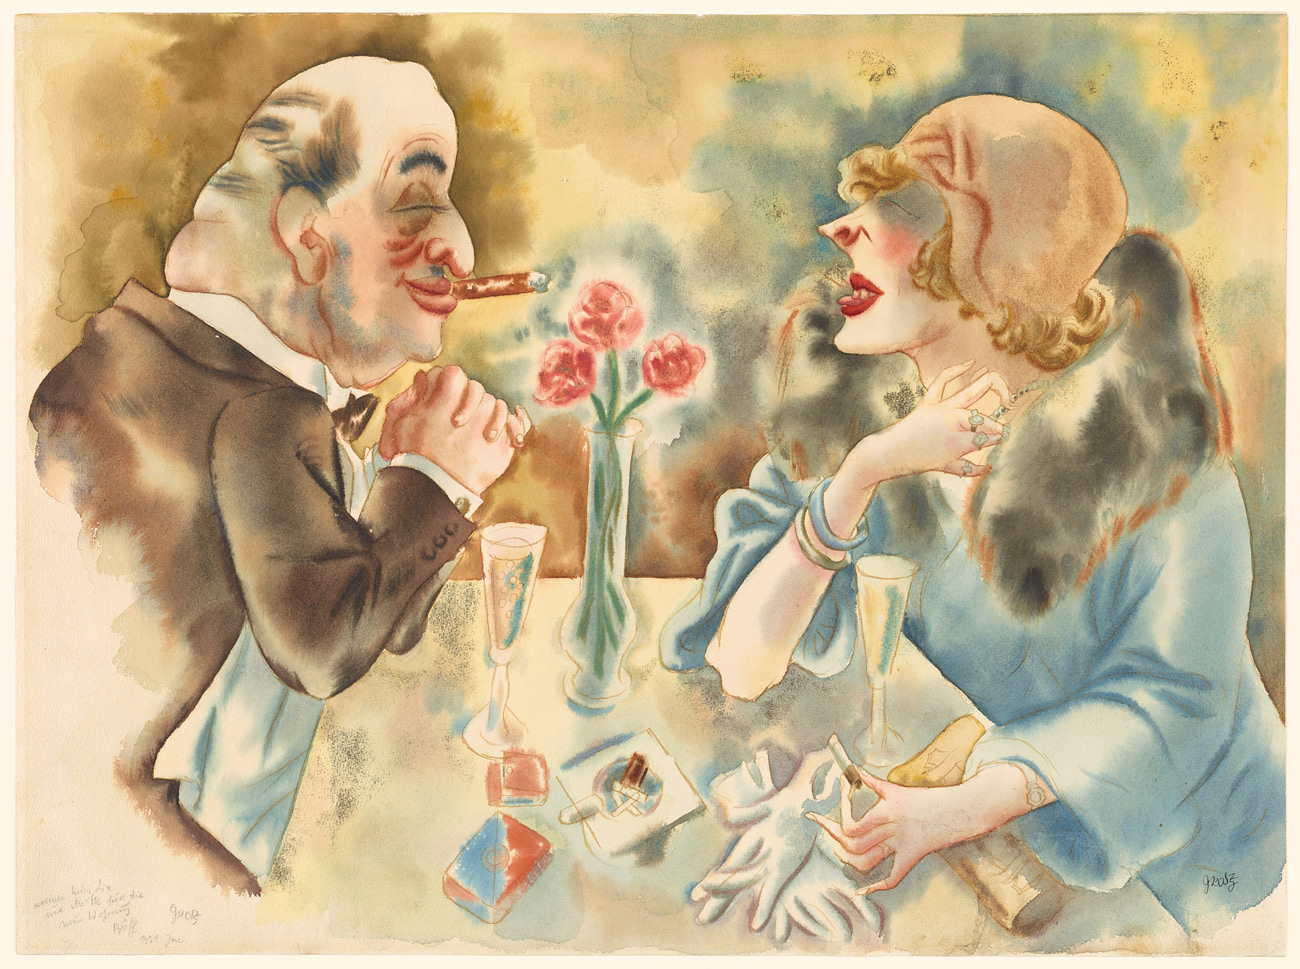 A balding man with a cigar faces a woman wearing a hat and stole over a table holding a vase with three red blooms